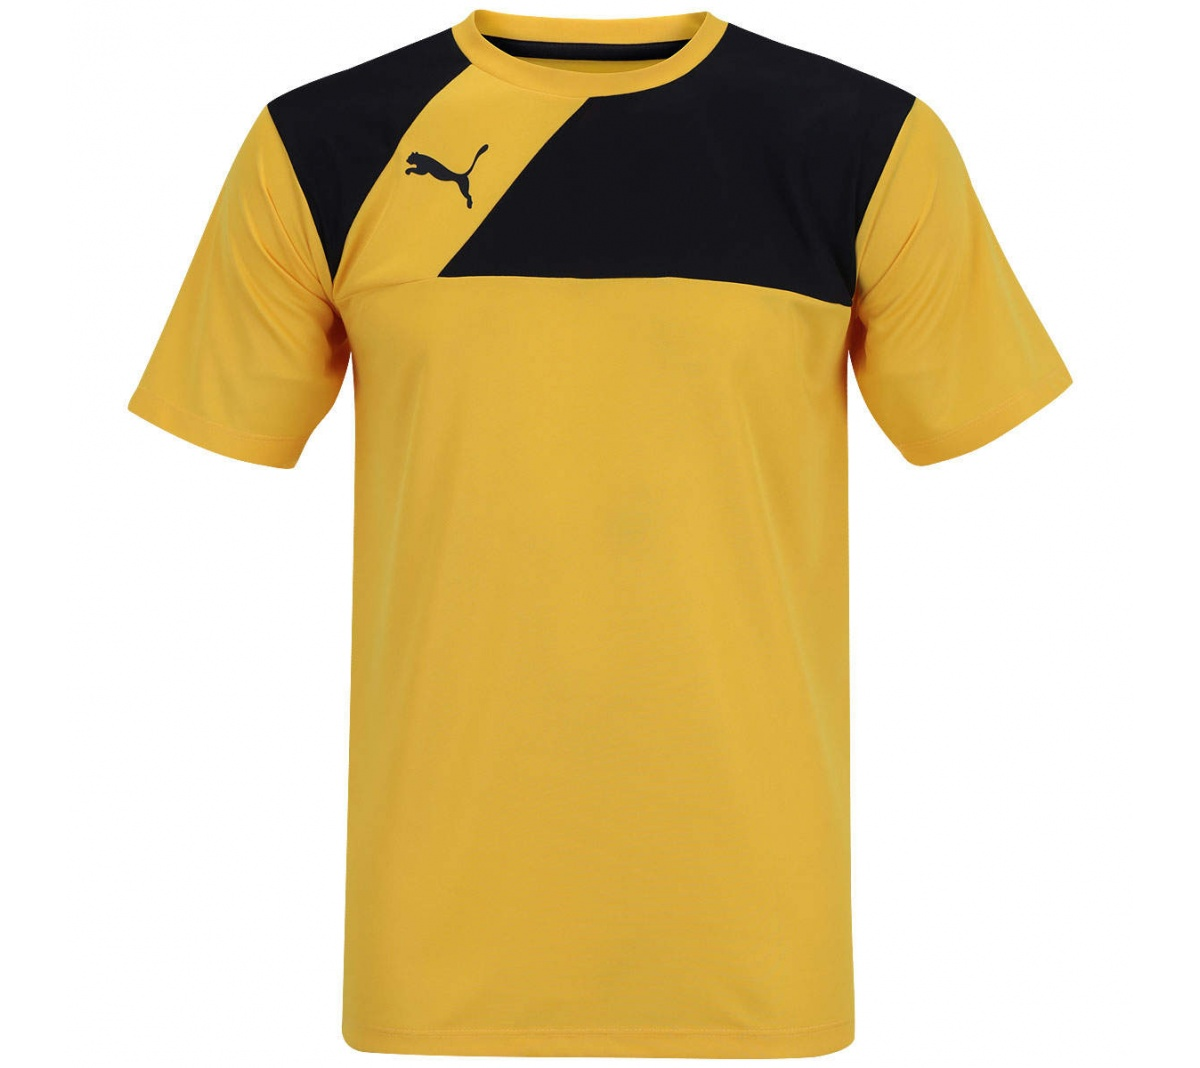 abbec8debe00c Camisa Puma Entry Training Amarelo com Preto - Mundo do Futebol